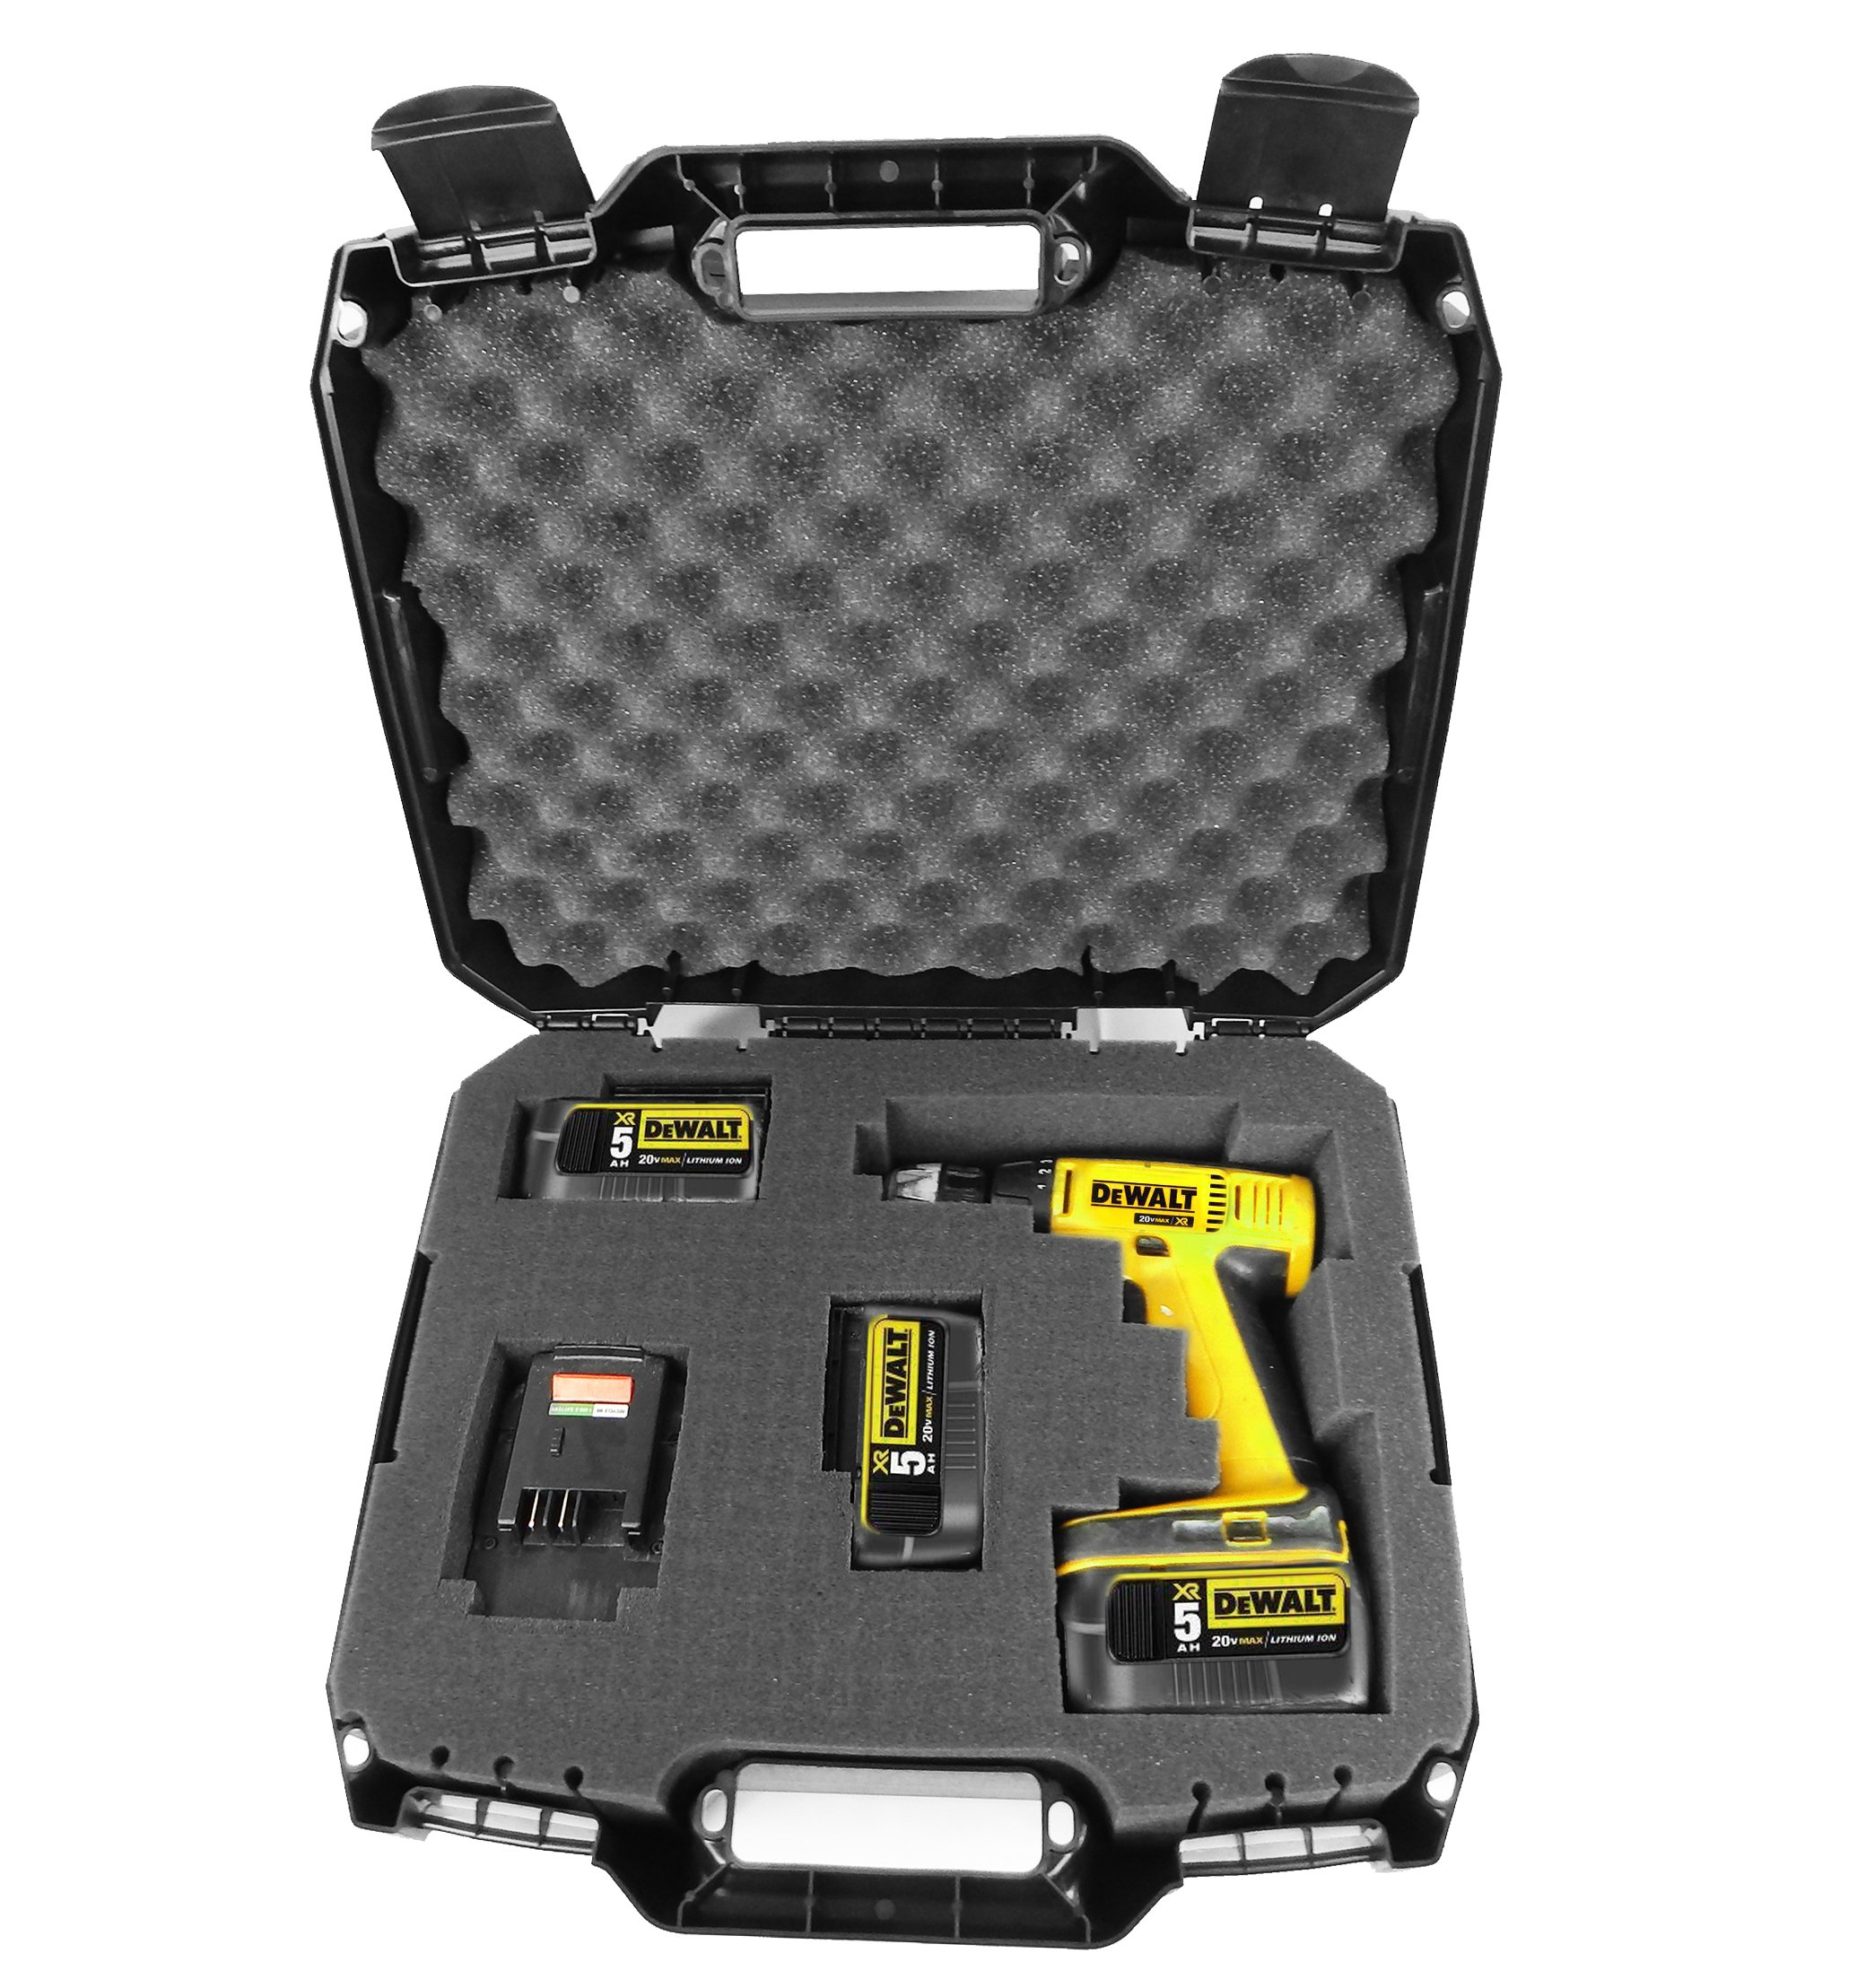 CASEMATIX RUGGED Impact Driver and Power Tool Case Fits Dewalt Impact Wrench , Batteries Chargers and Bits - Fits DCF899HB , DC825B , DCF887B , DC820B , DCF883B , DCF899B , DCF886B , DC823B and More by CASEMATIX